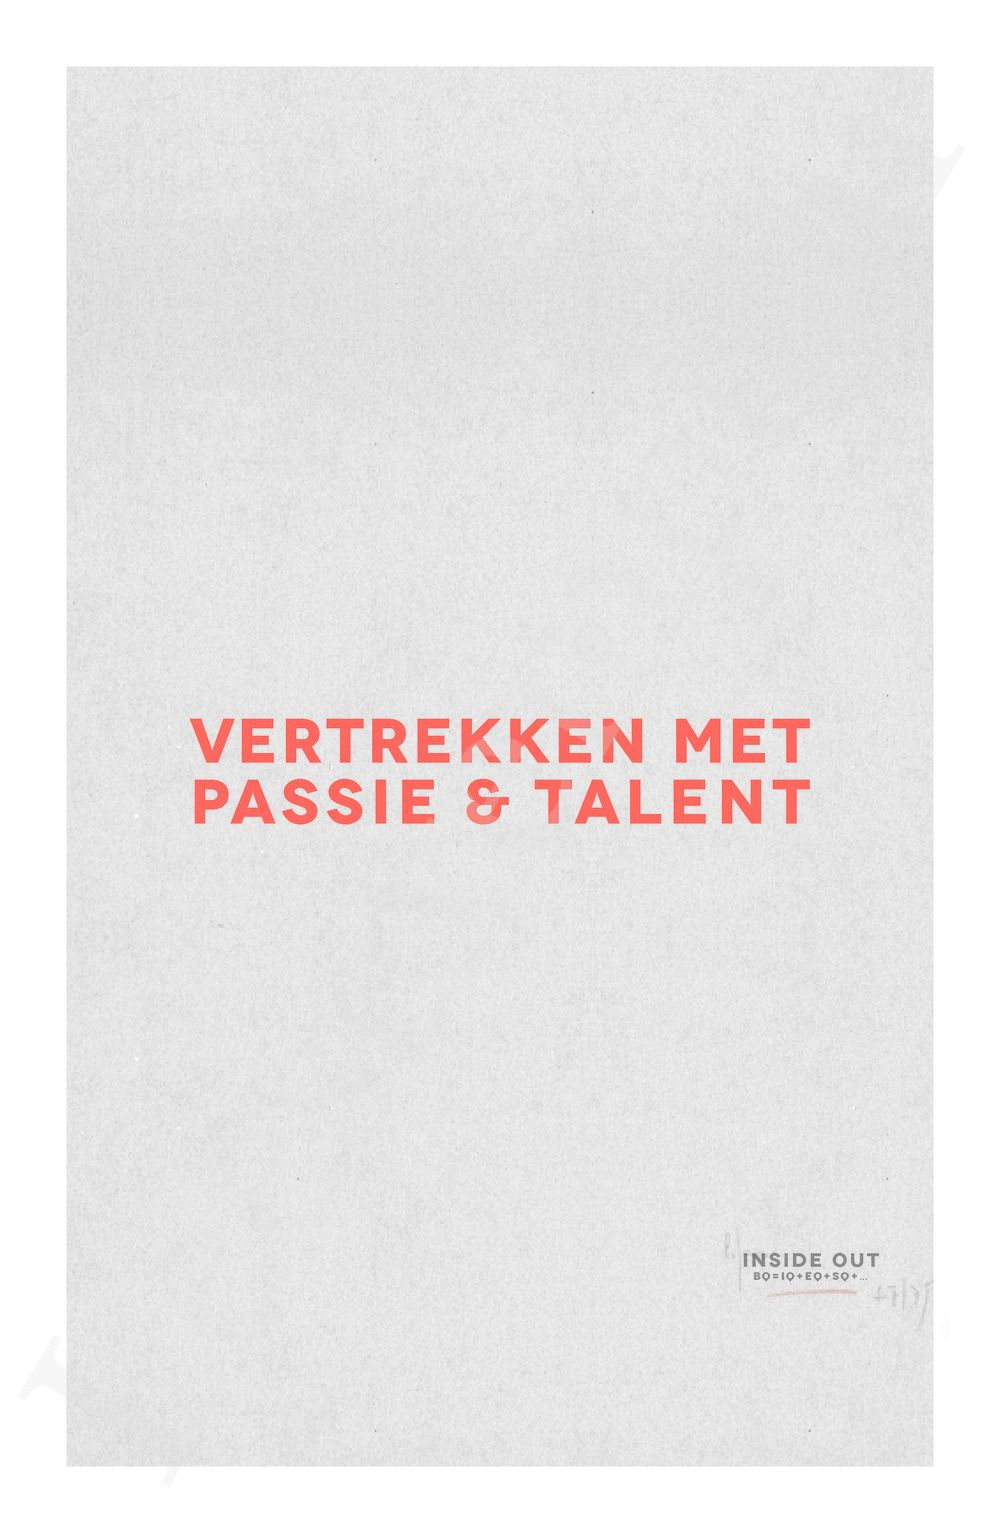 Preview: Vertrekken met passie en talent